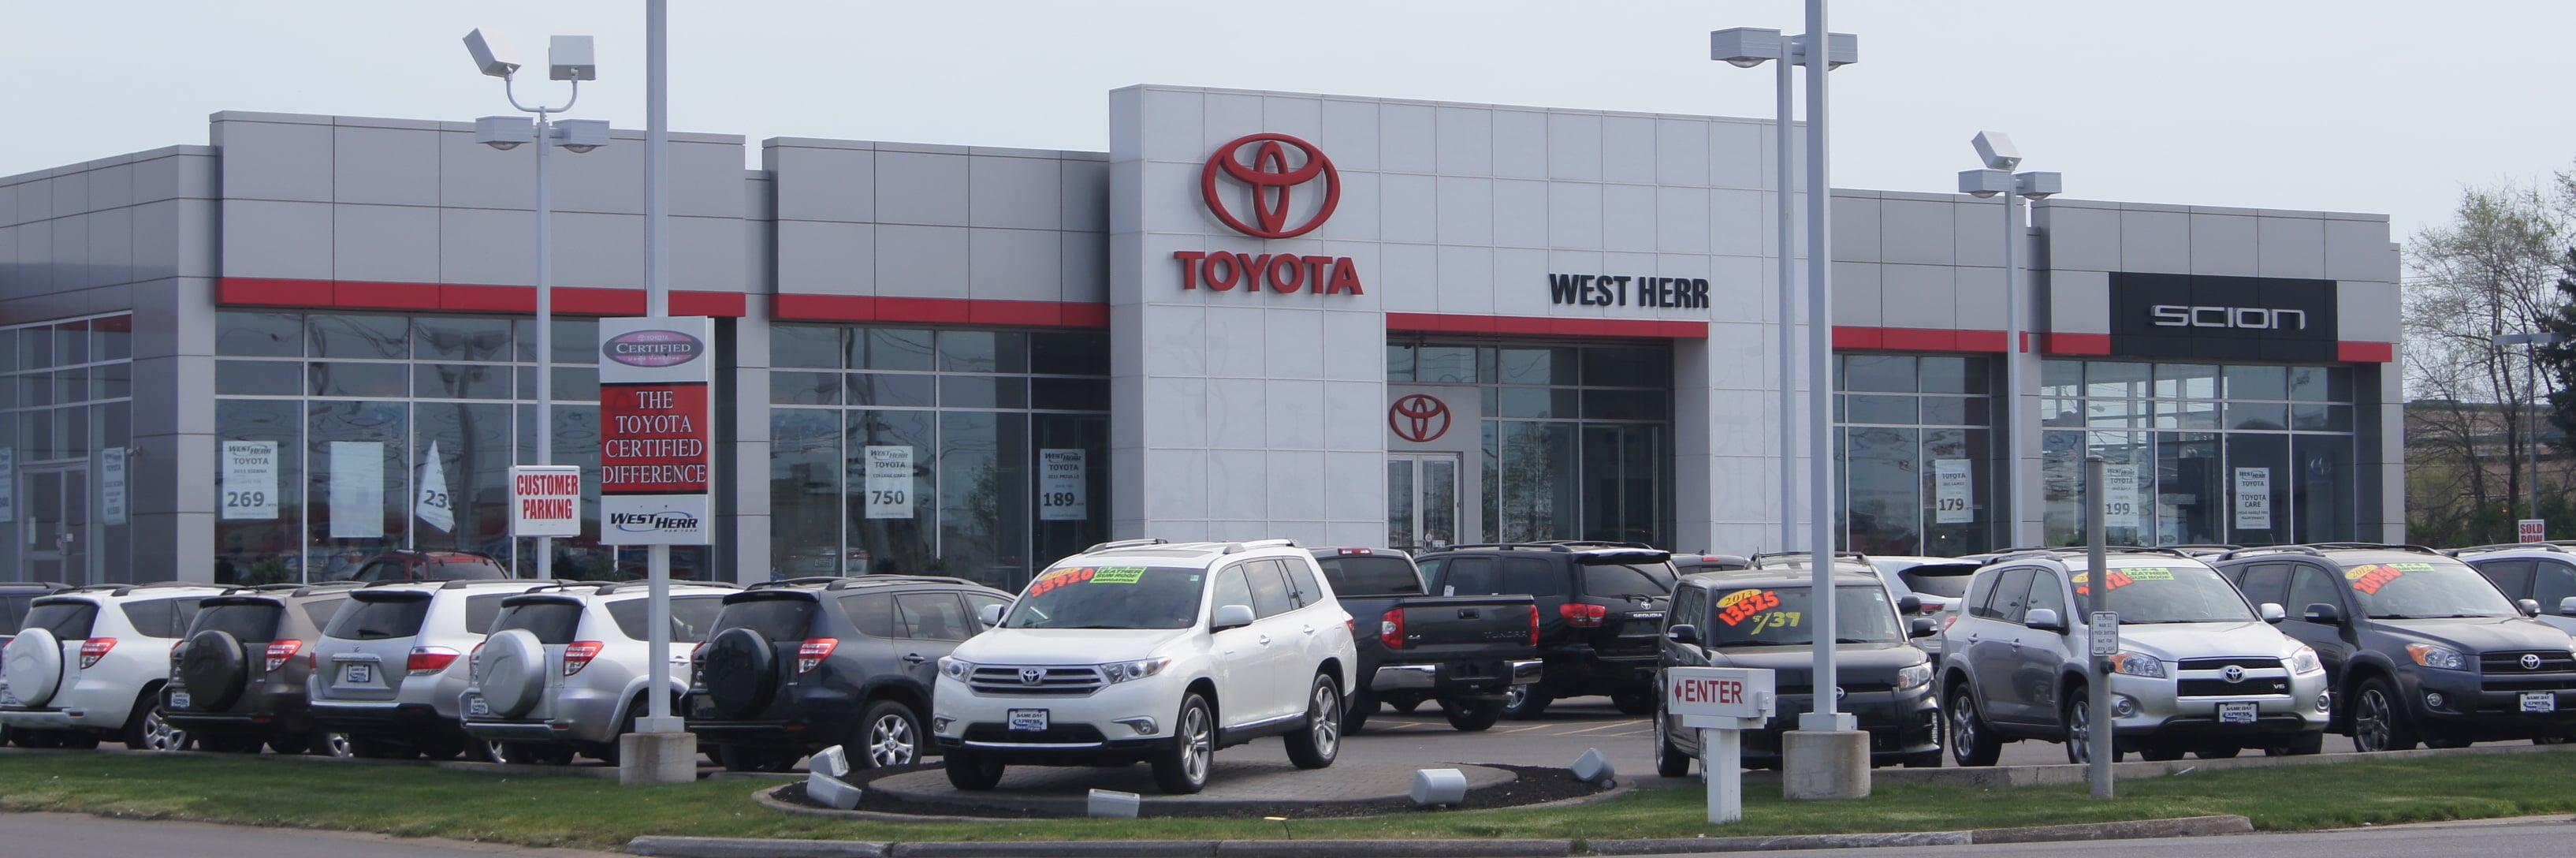 West Herr Toyota >> About West Herr Toyota Scion Of Williamsville New Toyota Scion